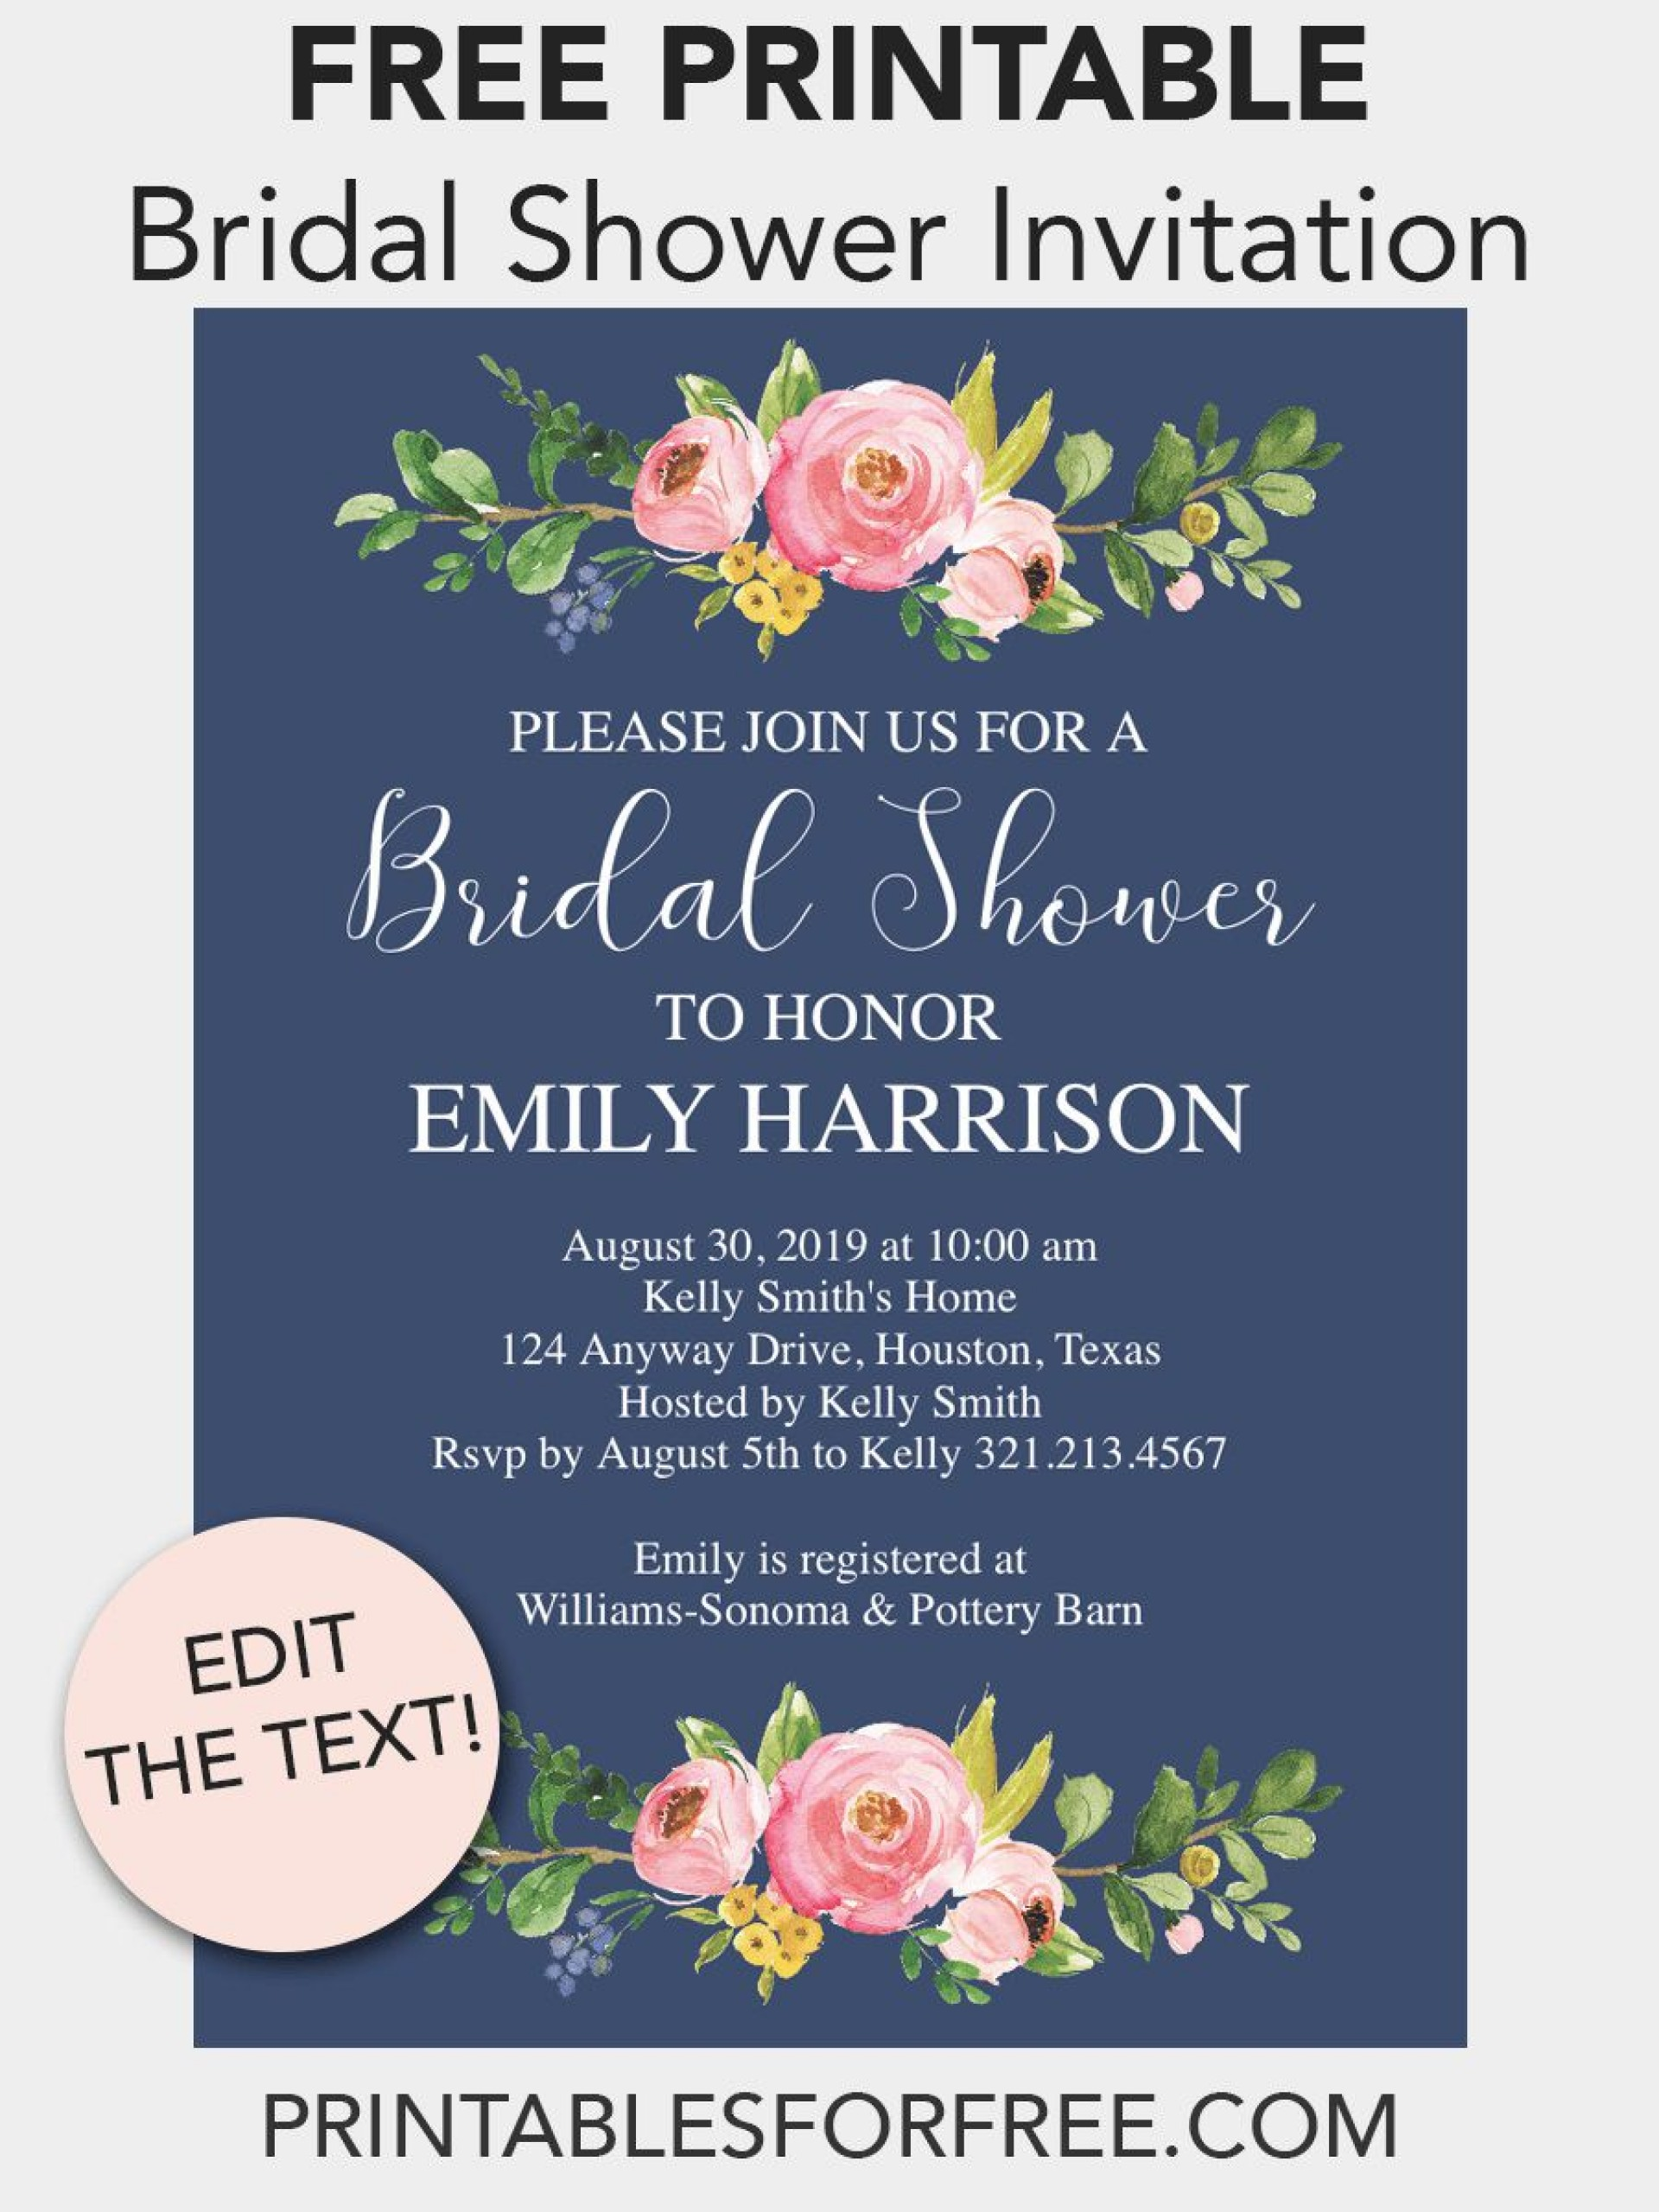 008 Staggering Free Bridal Shower Invite Template Highest Quality  Invitation For Word Wedding Microsoft1920